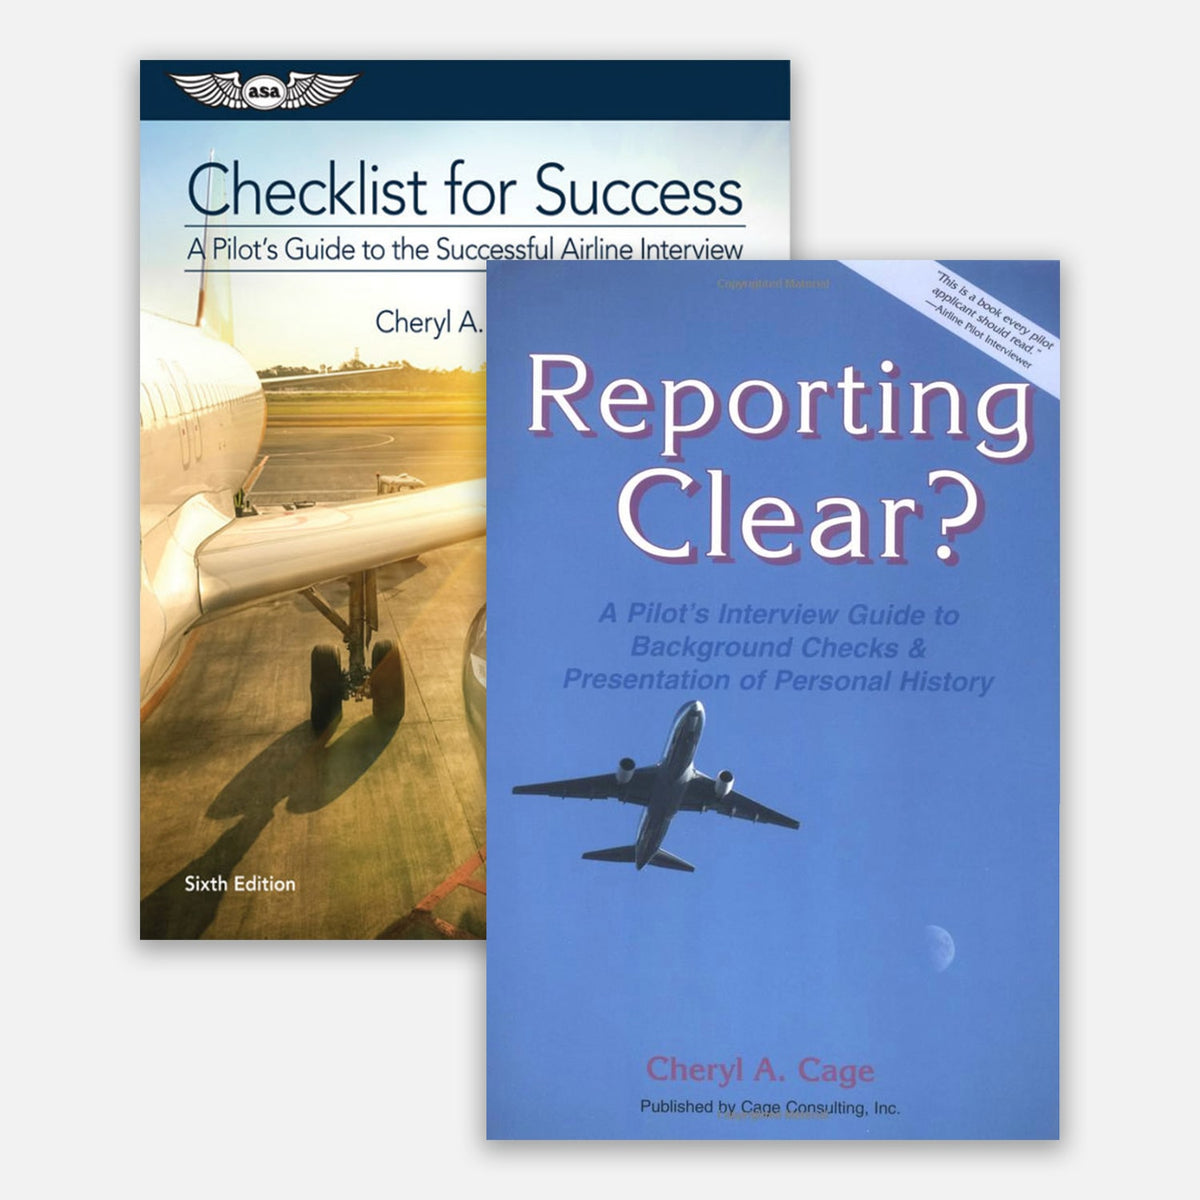 Cage Marshall Consulting 2 Book covers - Checklist for Success and Reporting Clear